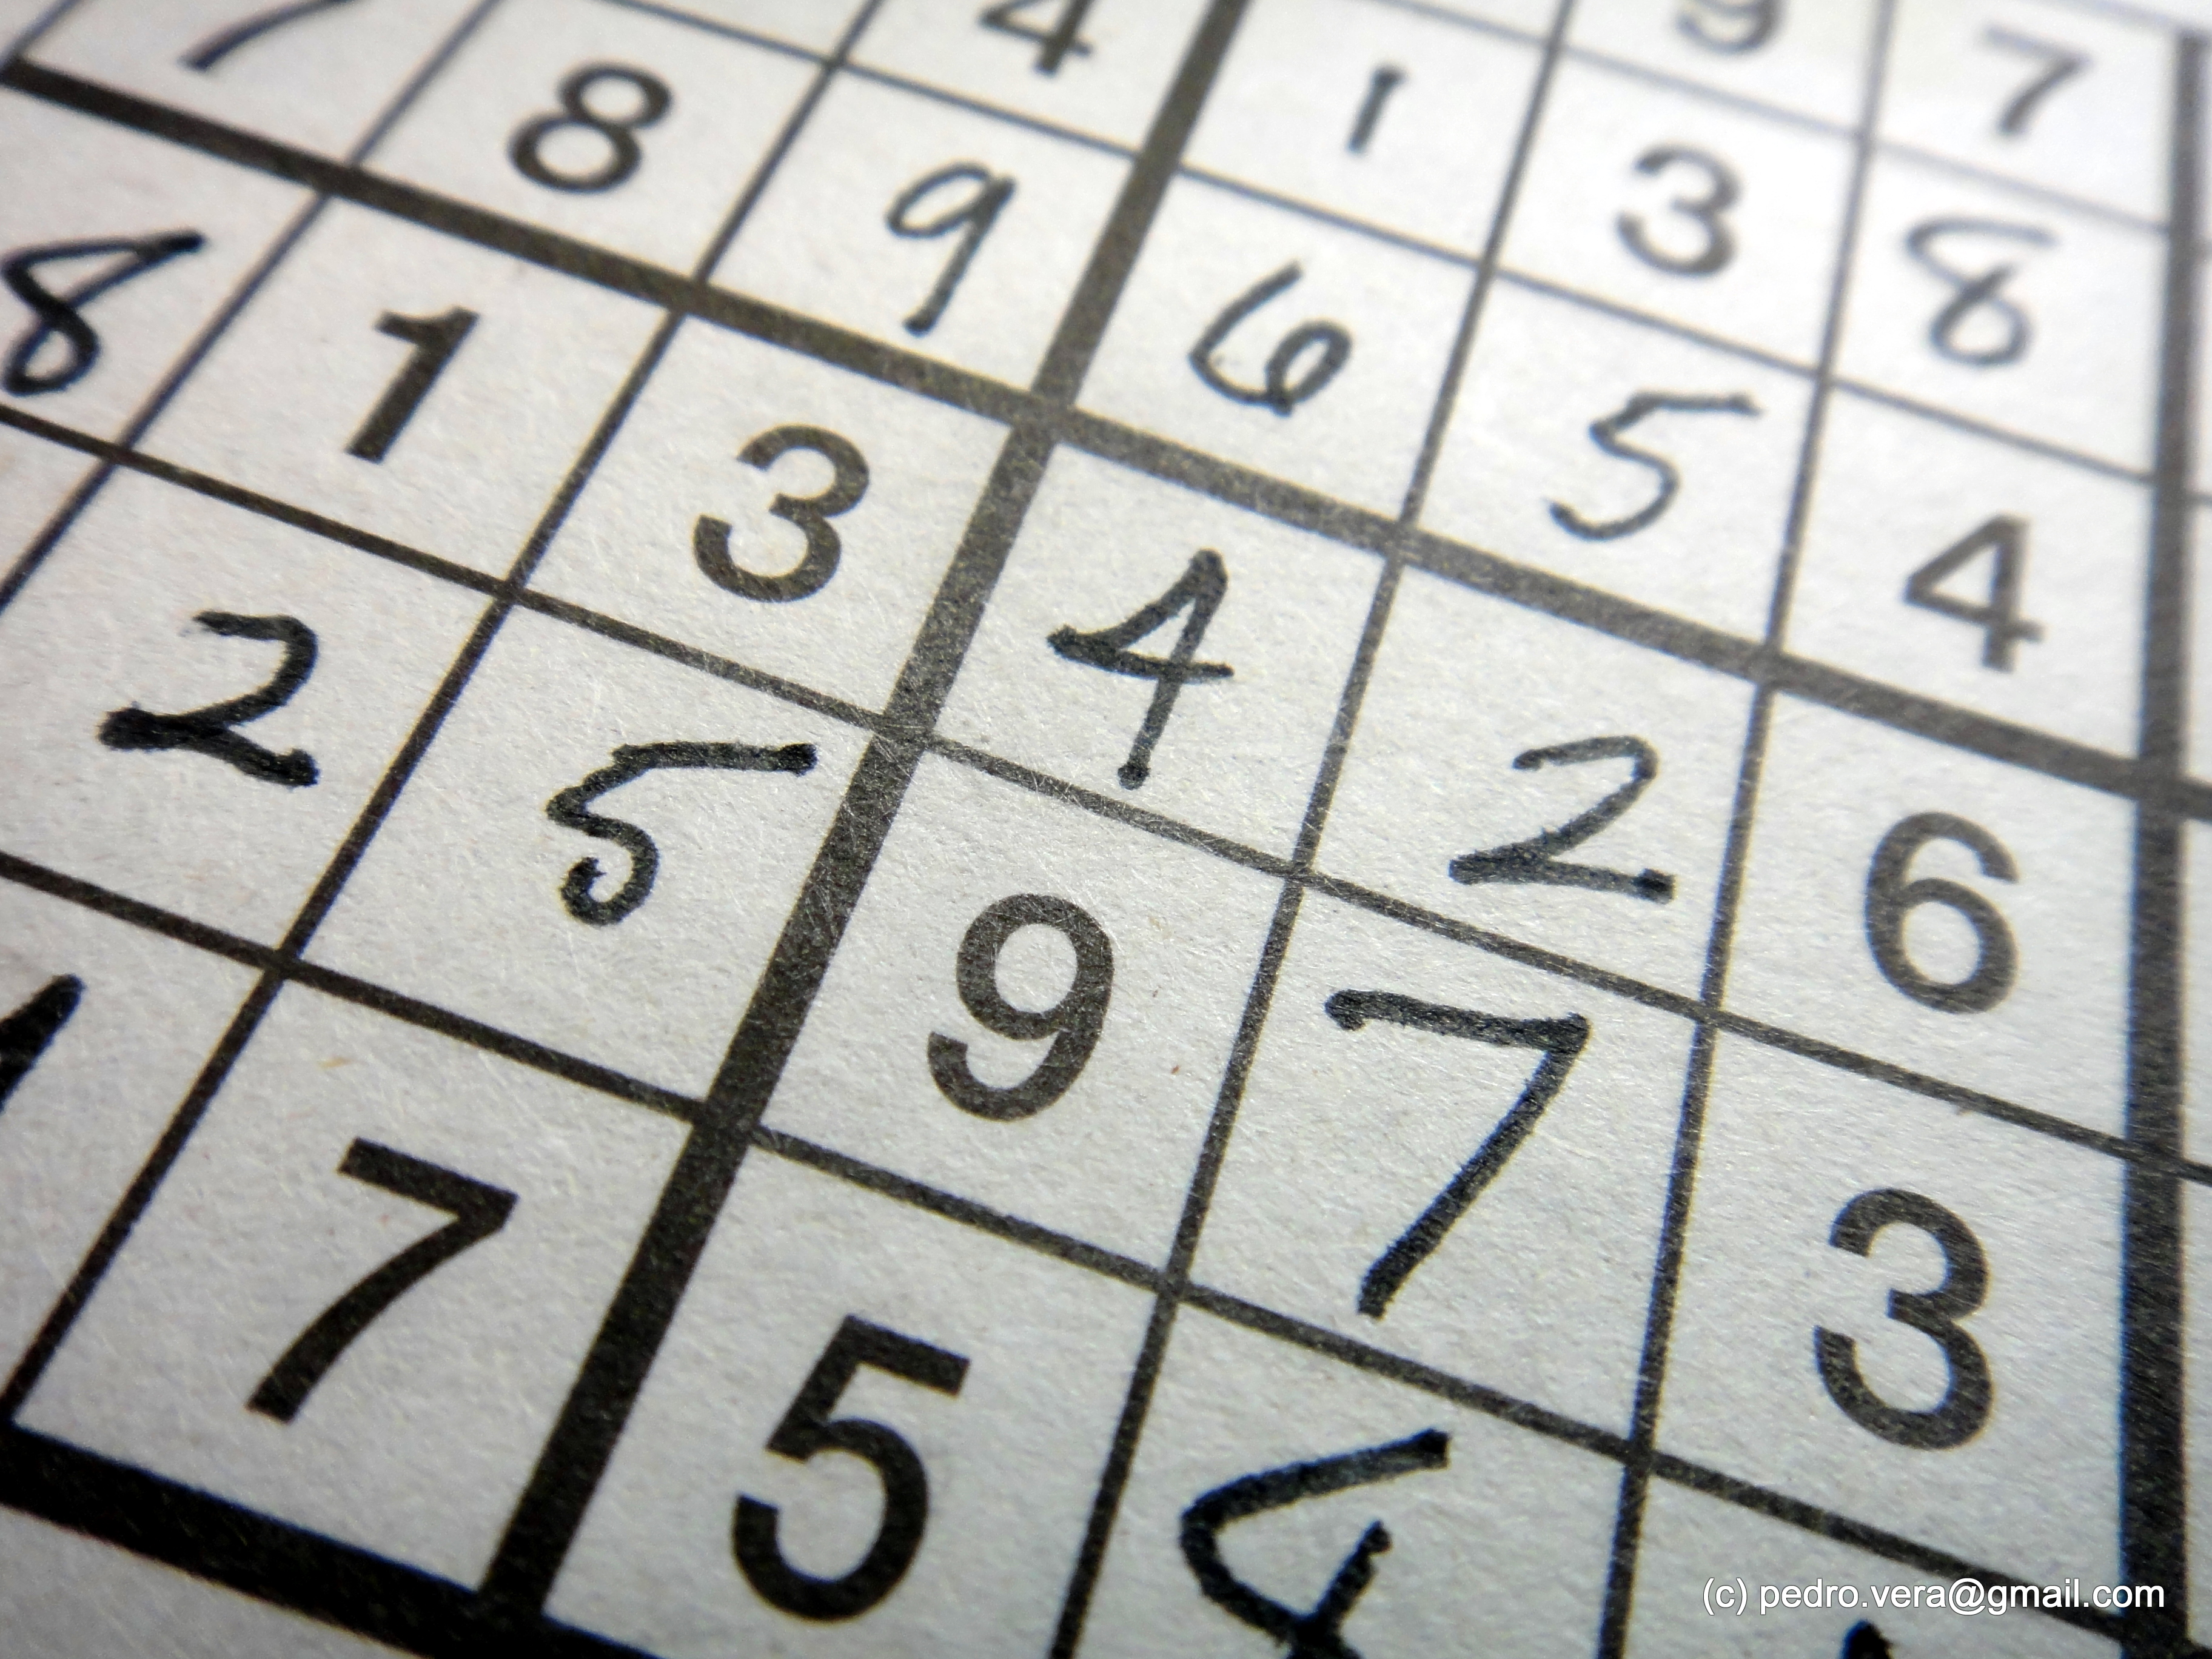 image regarding Printable Sudoku Puzzles 6 Per Page identified as Newbie Printable Sudoku Puzzles 6 For every Site Guide 1 Free of charge